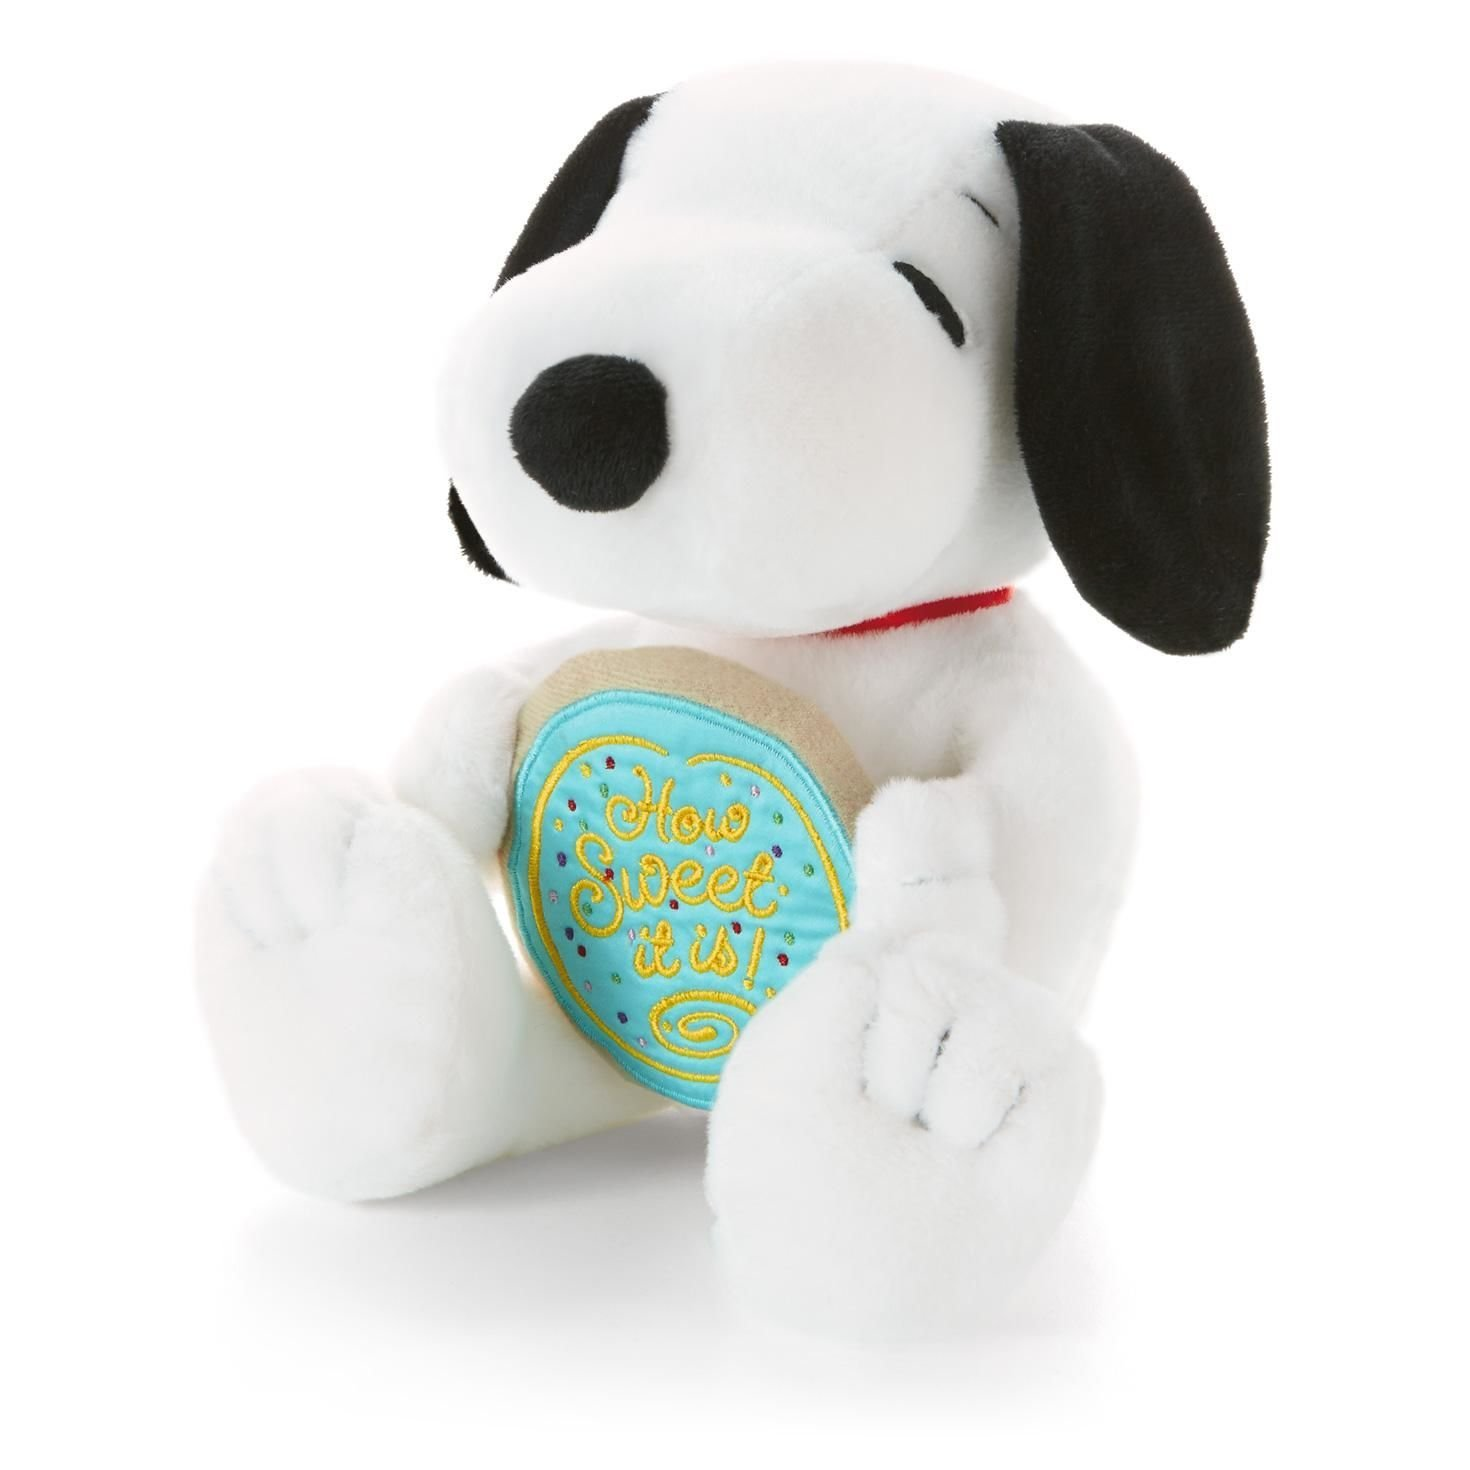 Snoopy Holding Cookie Classic Stuffed Animals Hallmark Paj1104 How